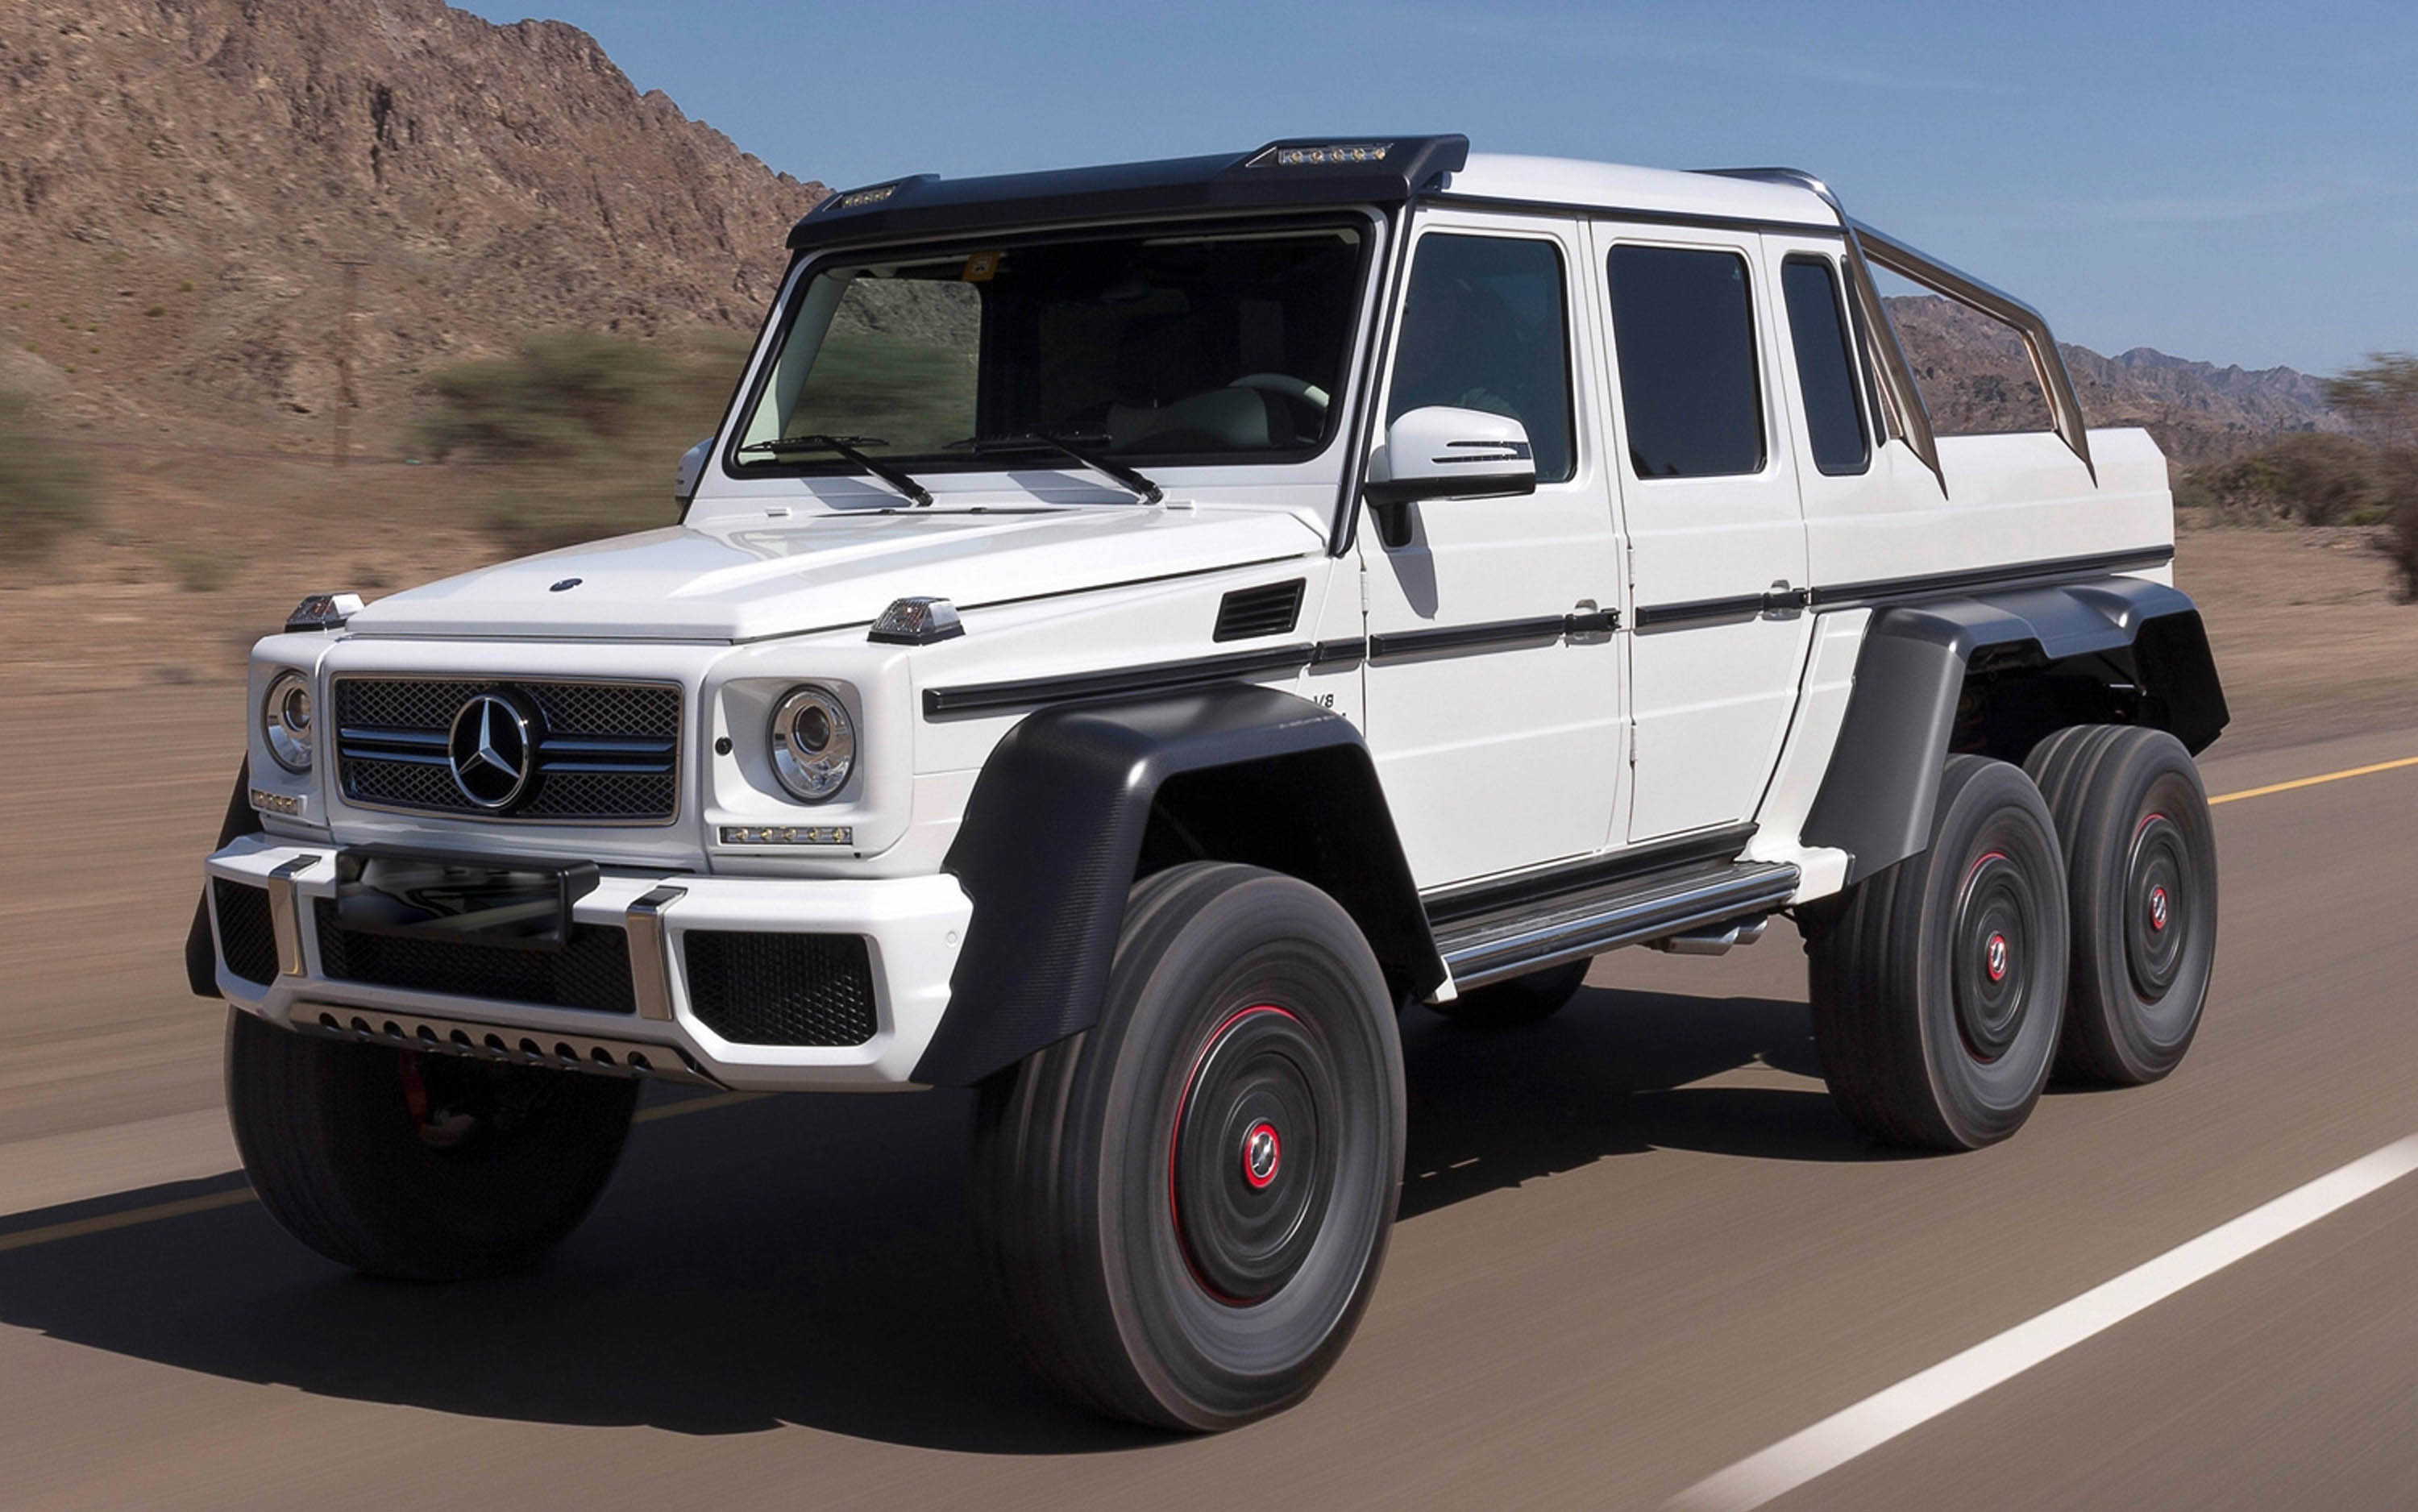 Mercedes g63 amg 6x6 mega engineering vehicle for Mercedes benz g63 6x6 for sale